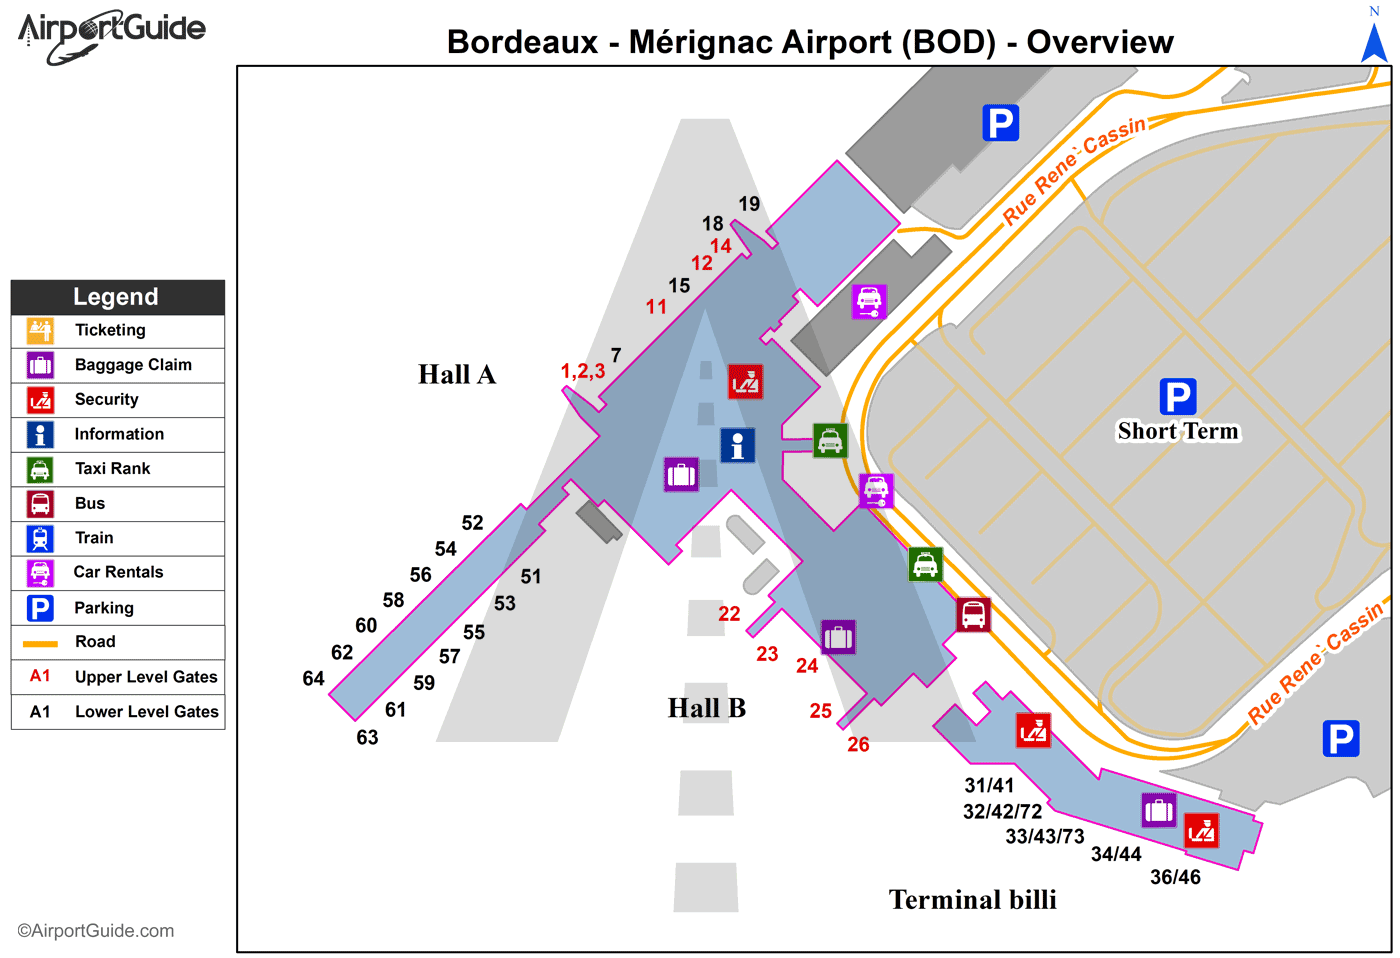 Bordeaux/Mérignac - Bordeaux-Mérignac (BA 106) (BOD) Airport Terminal Map - Overview